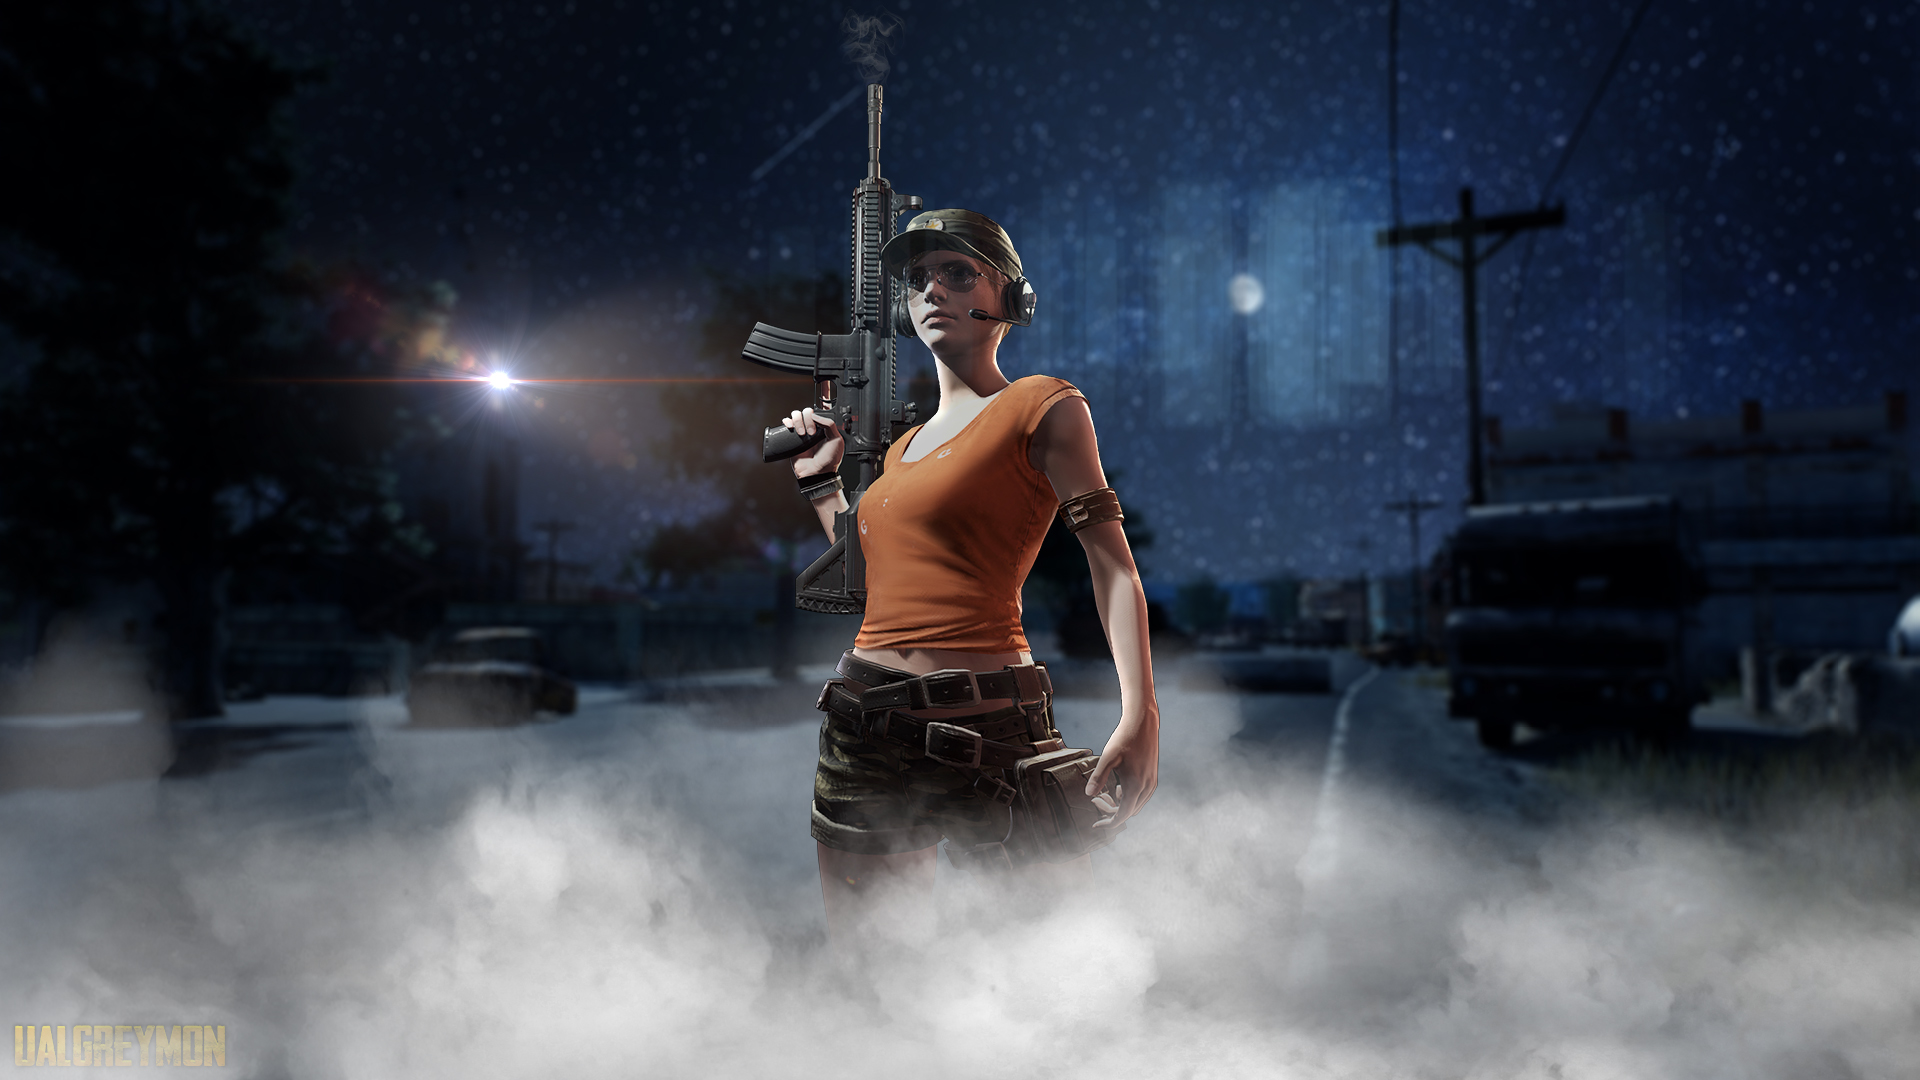 Pubg Wallpaper Themes: Pubg Night, HD Games, 4k Wallpapers, Images, Backgrounds